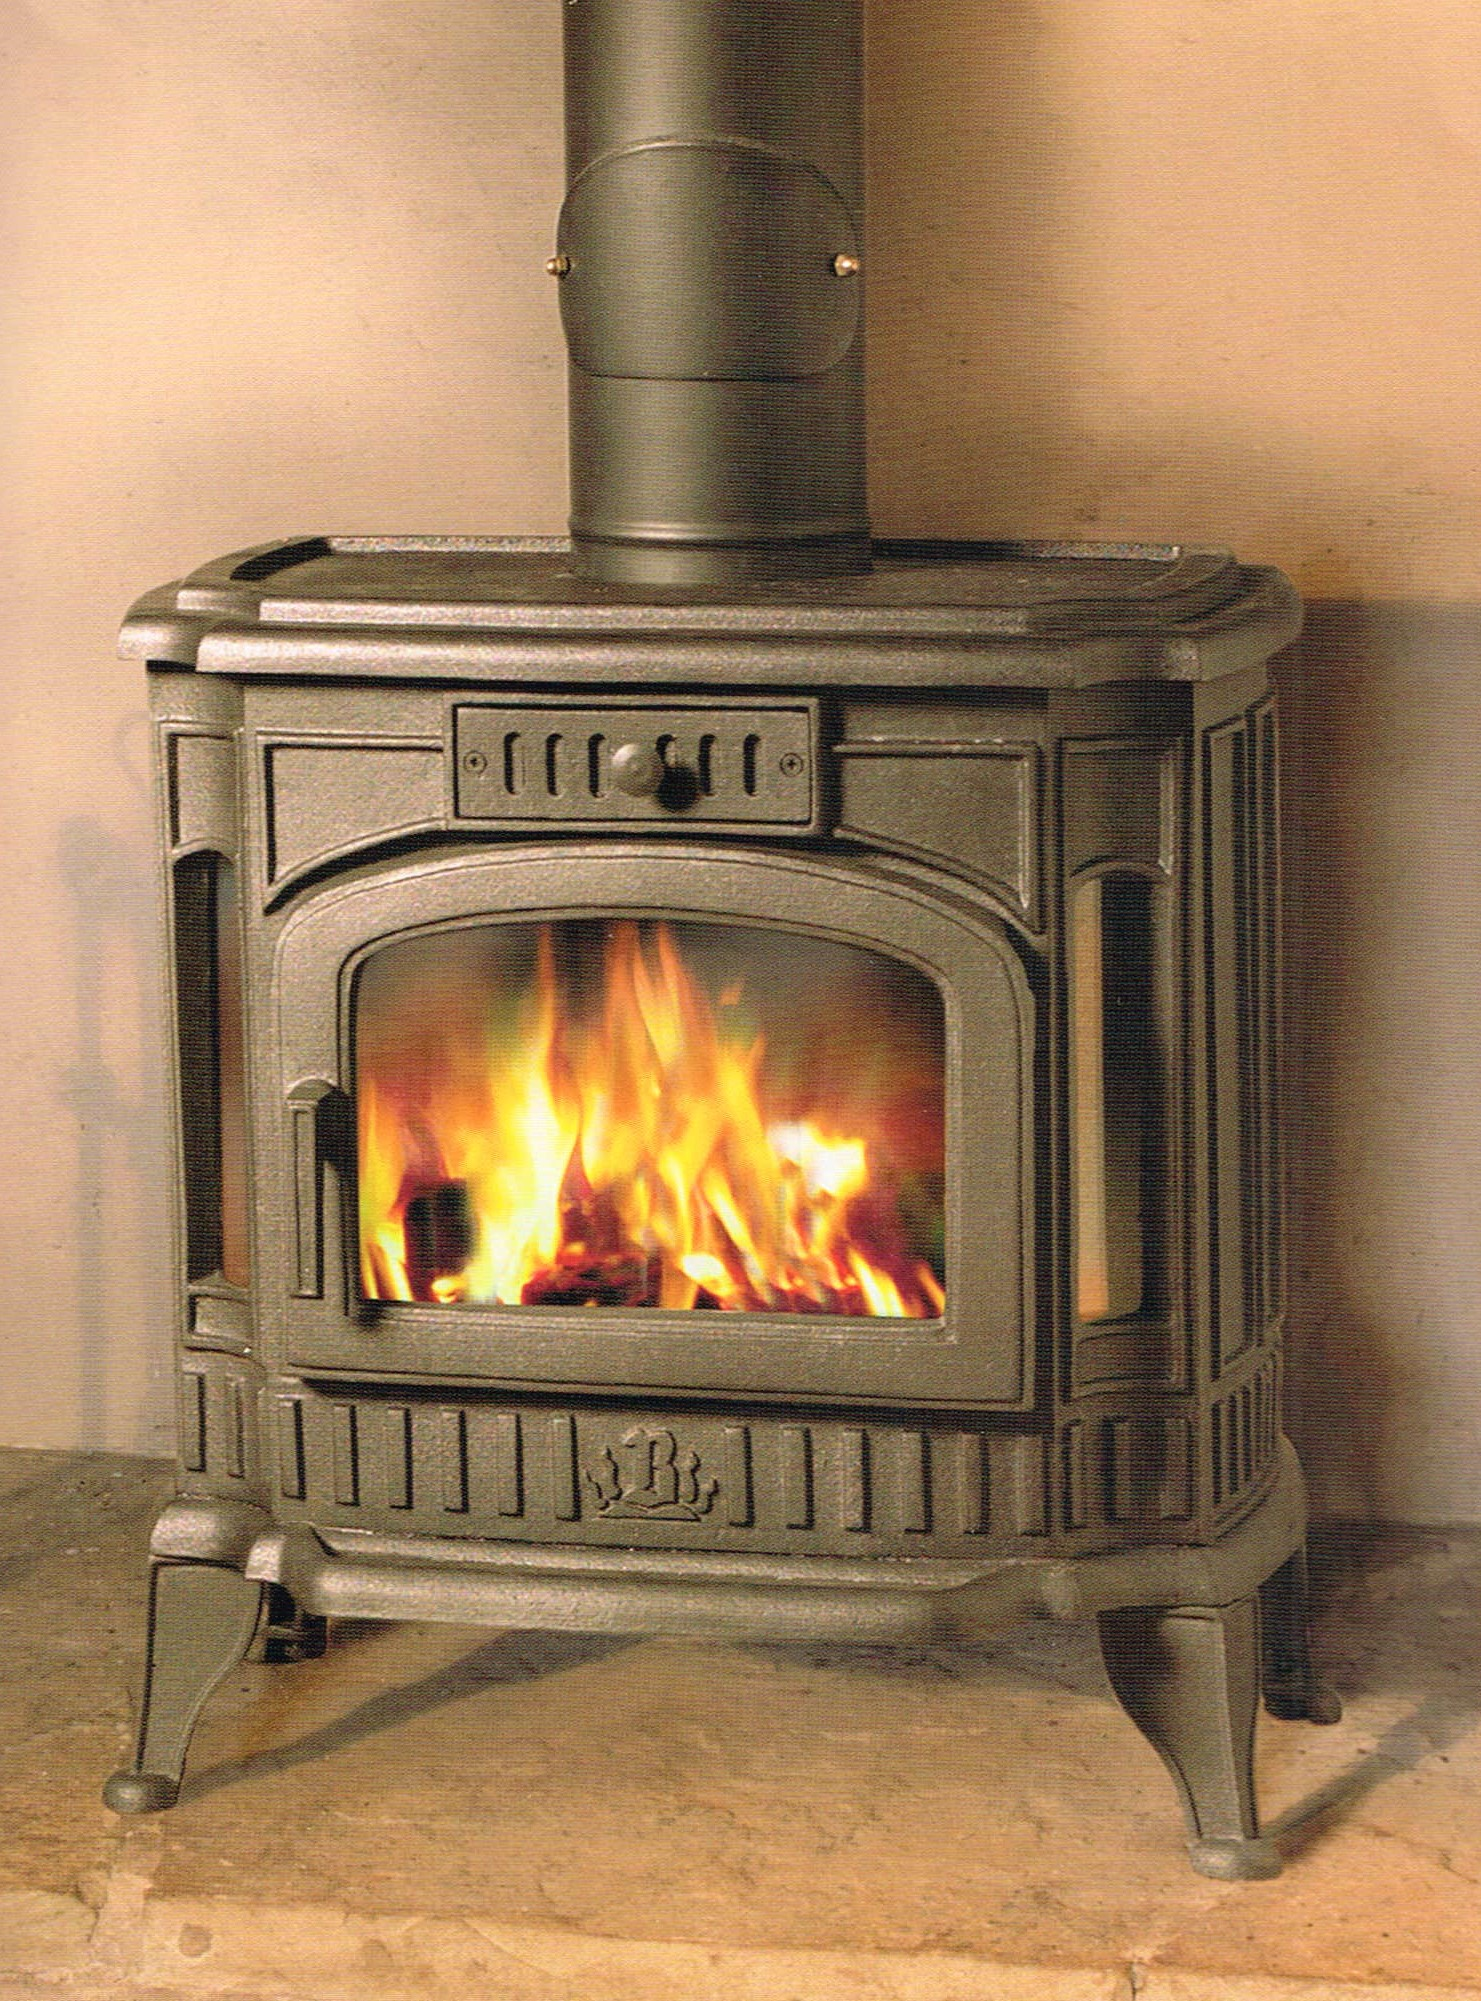 GAS STOVE WINCHESTER GAS STOVE